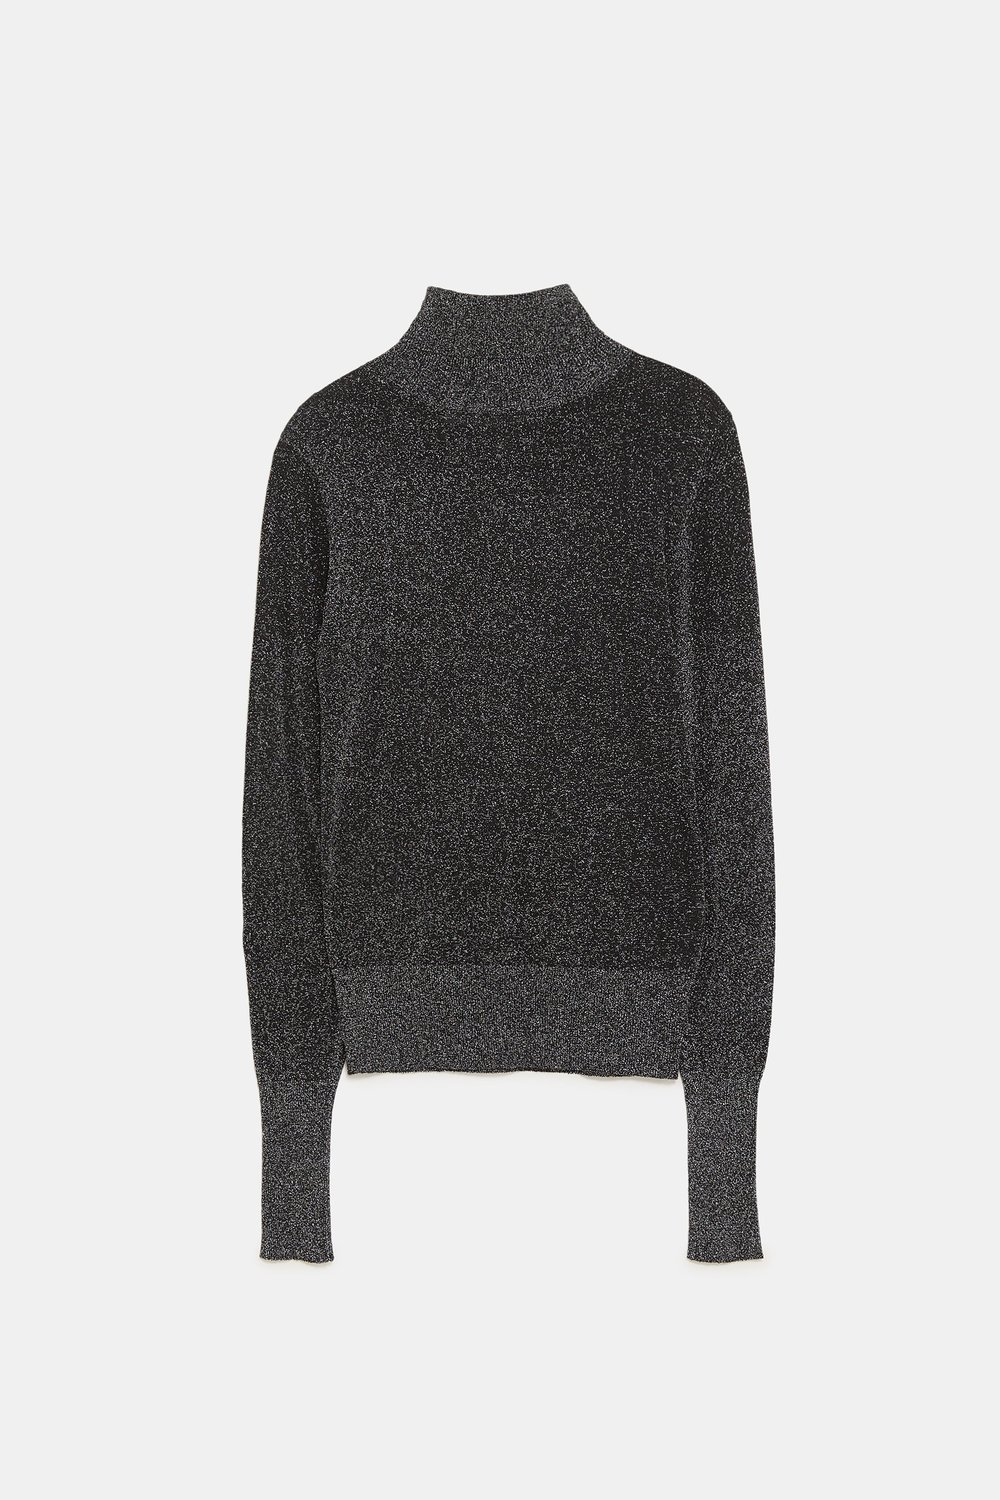 Zara Metallic Turtleneck